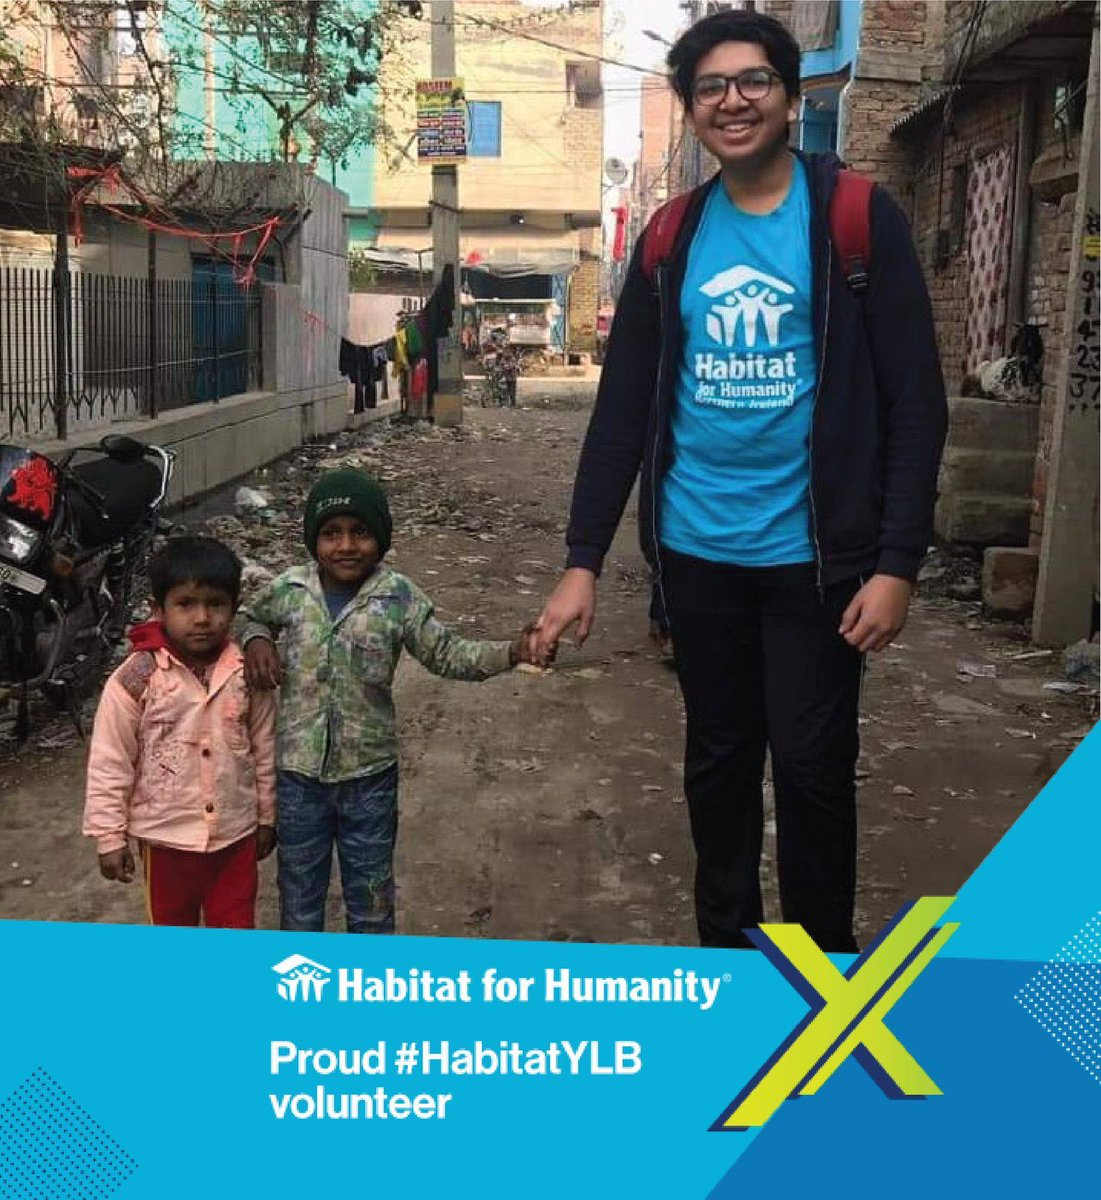 Hundreds of young volunteers celebrated #InternationalVolunteerDay #IVD2020 by helping us launch the 10th #HabitatYLB campaign. Read about the inspiring ways they contributed to our mission here: